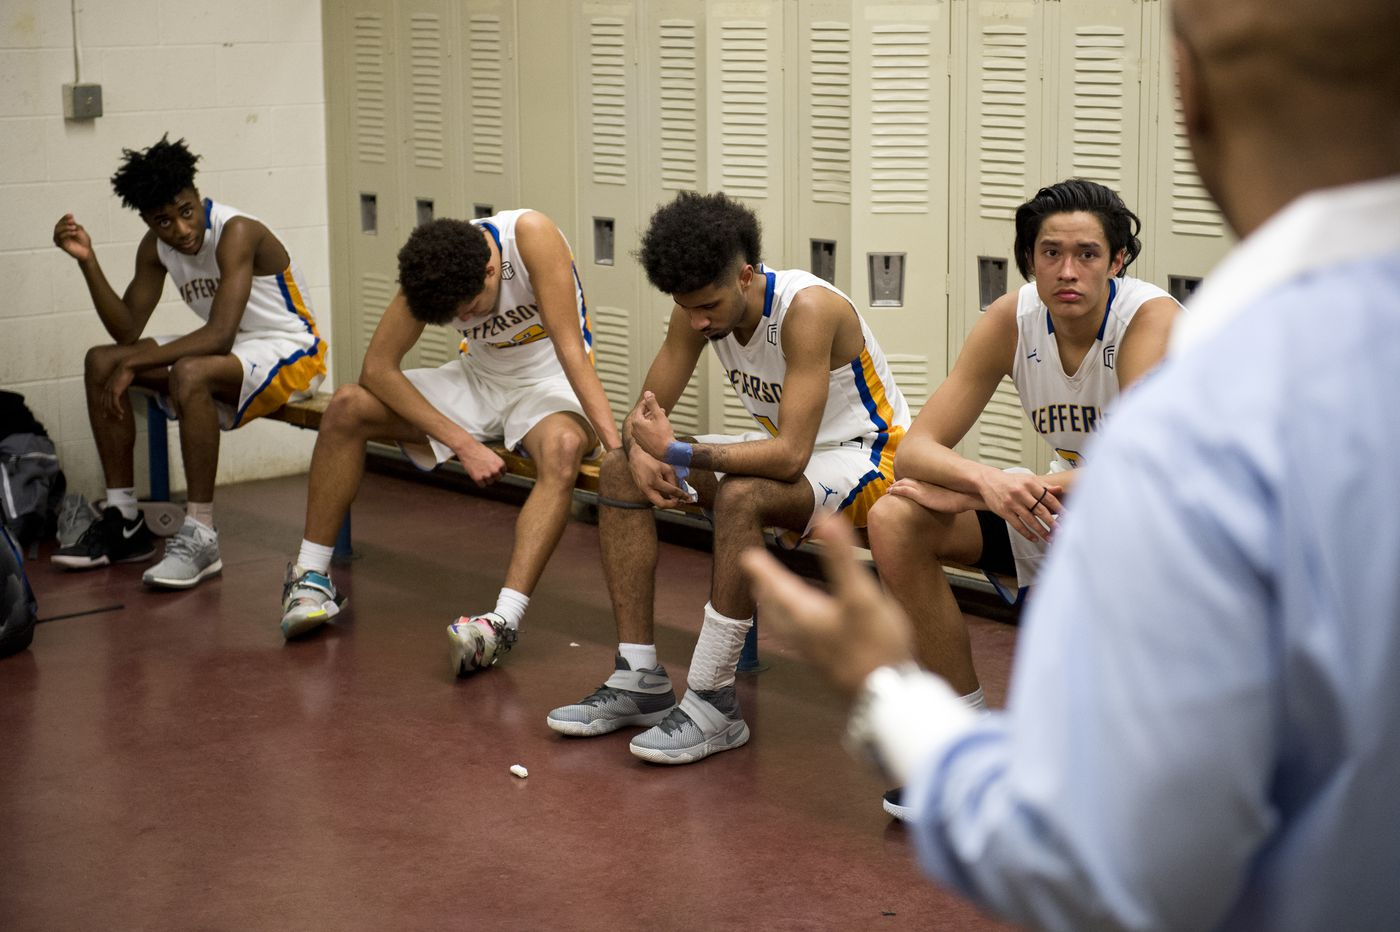 Jefferson basketball coach Pat Strickland speaks to Kamaka Hepa and his teammates at halftime of a game against Portland's Cleveland High School. (Marc Lester / ADN)